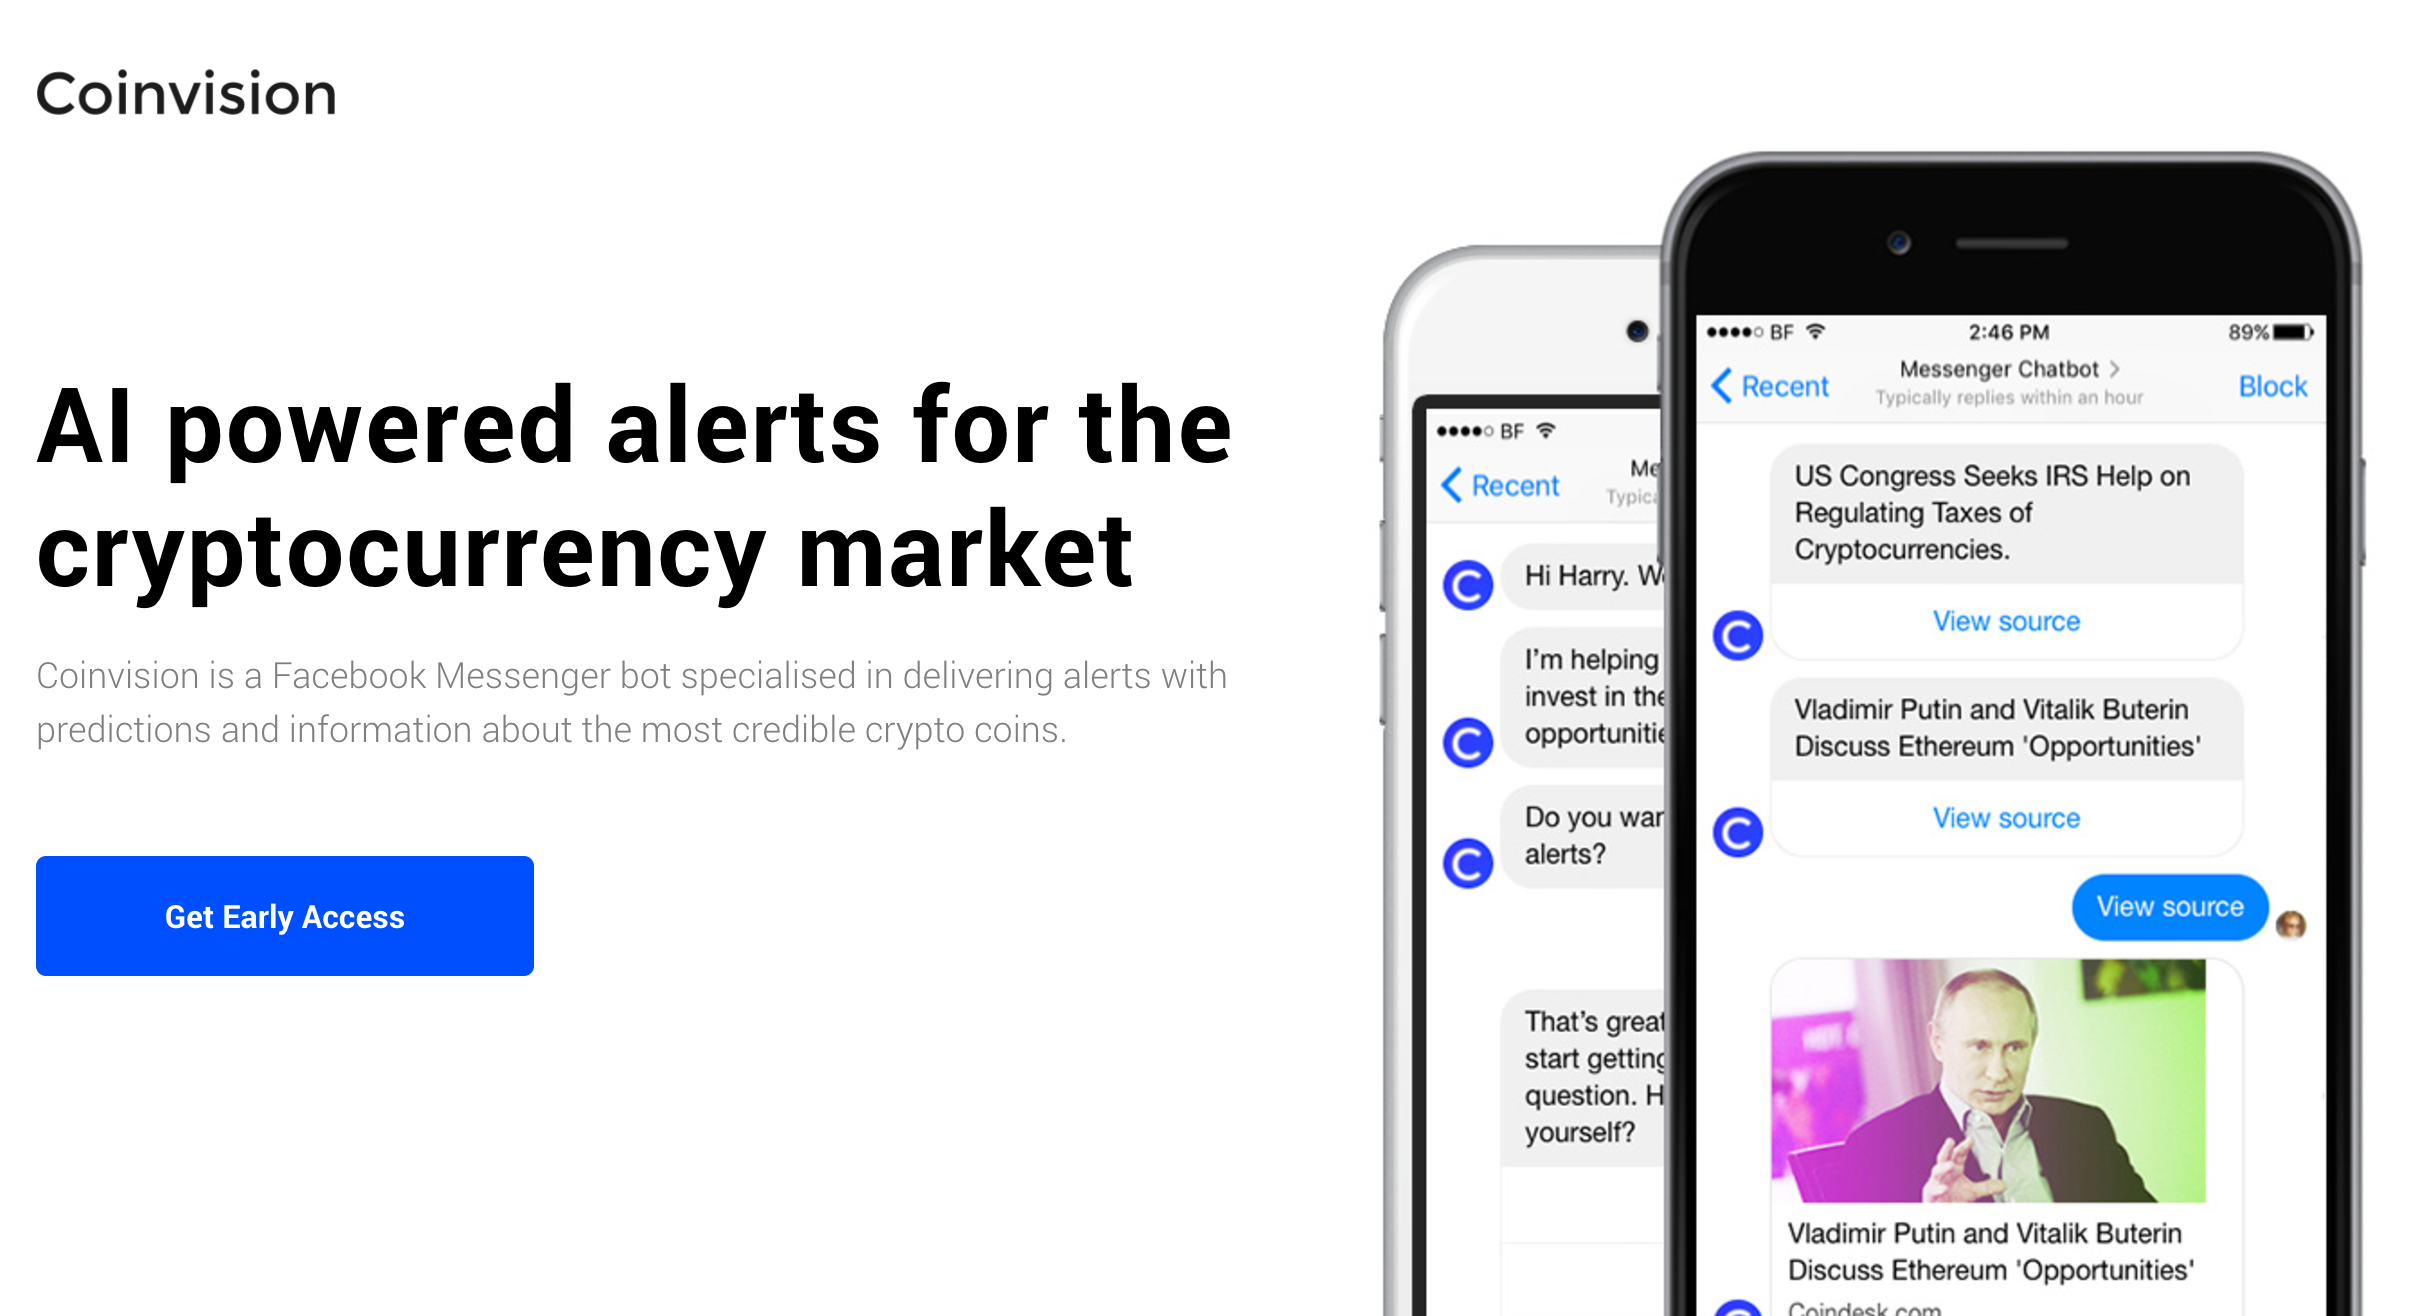 Crypto Alert Bot Telegram Learning How To Trade Cryptocurrencies – DEPPO